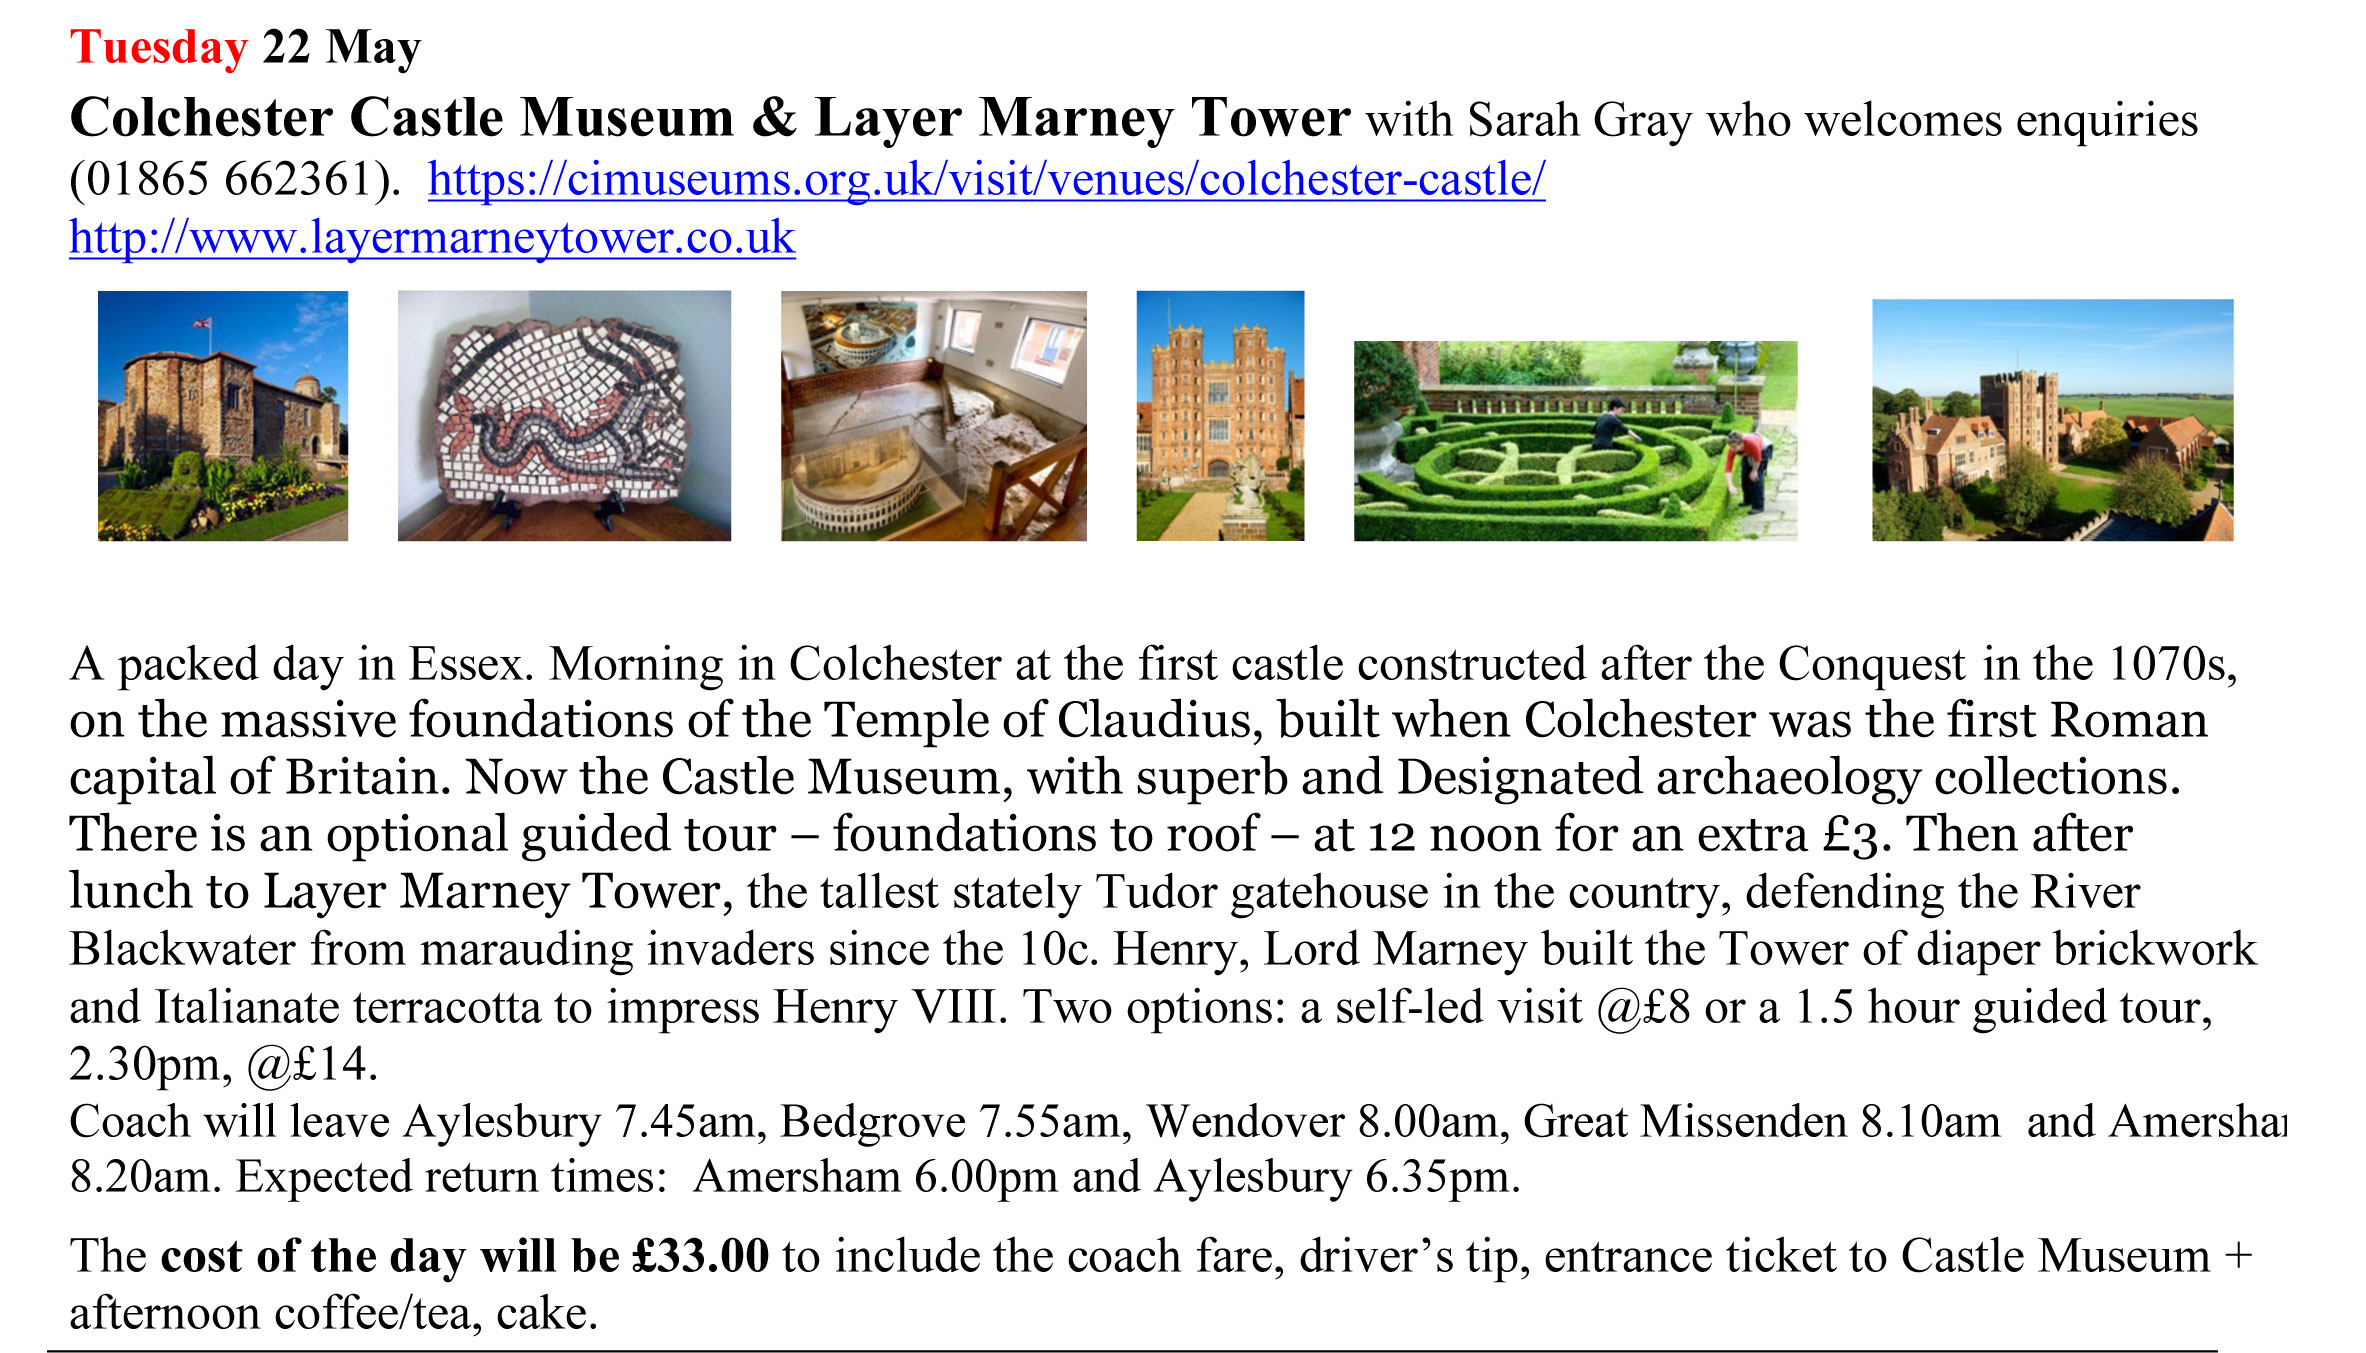 Colchester outing details